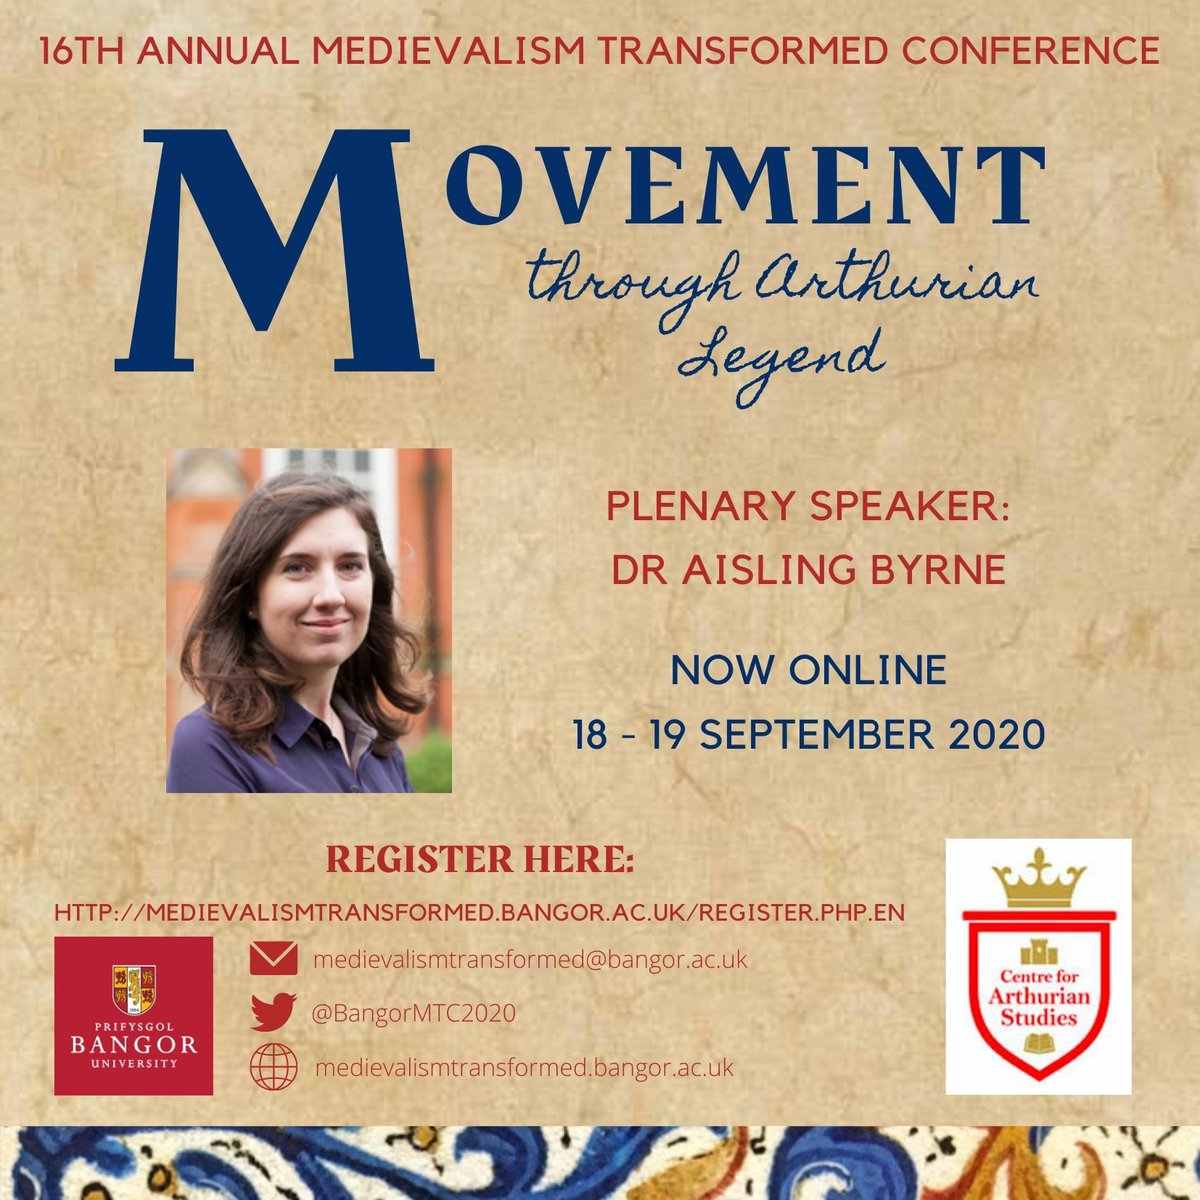 So proud of our @BangorMTC2020 team: 'Movement through Arthurian legend' conference is now ready to go - join us @ArthurBangor @BangorUni for this online event on 18 and 19 Sep https://t.co/KkSx4bMp3d